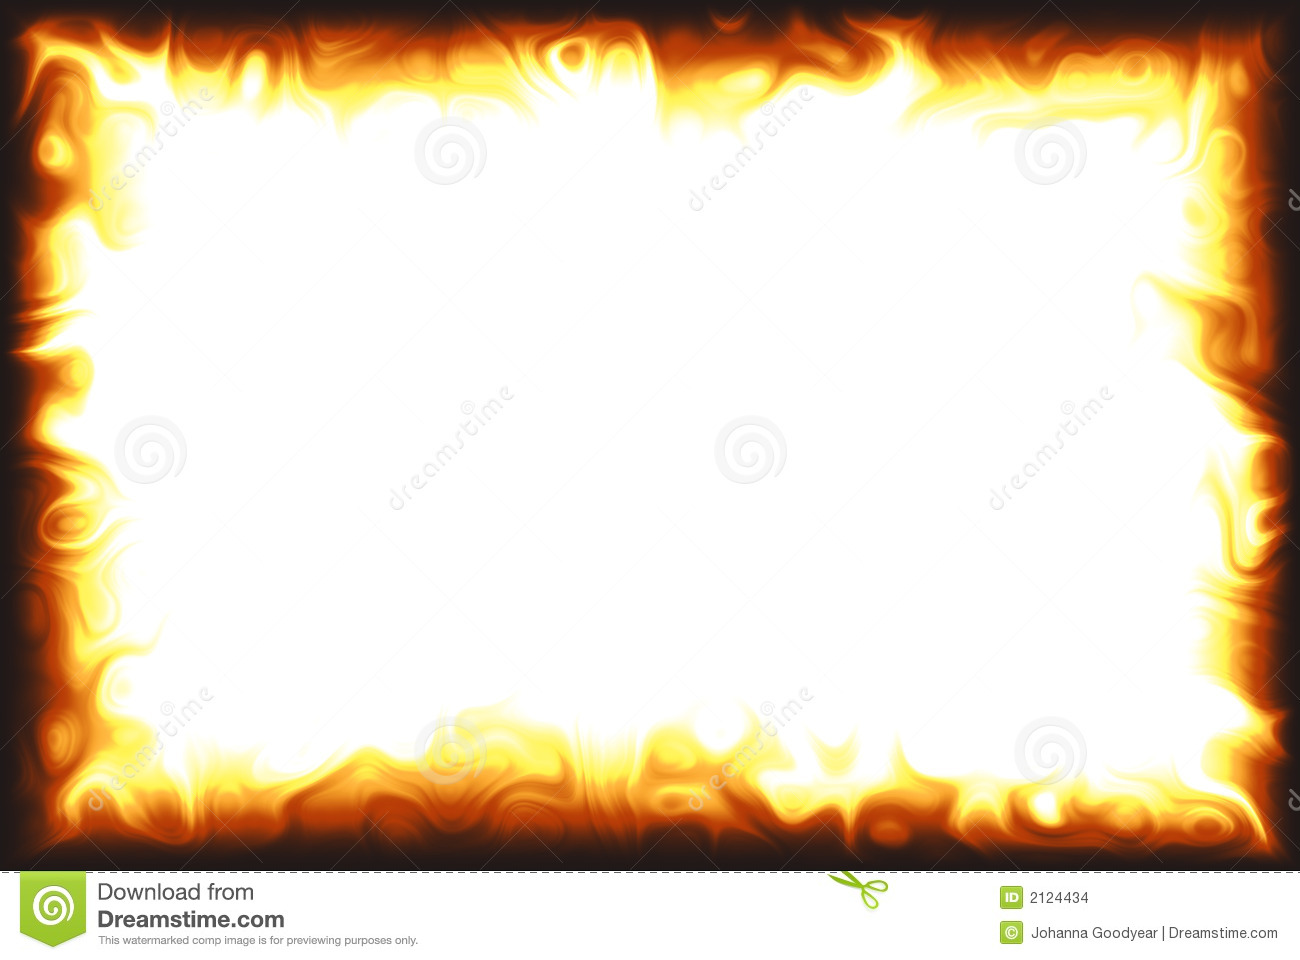 Computer Generated Flame Border Over White Background